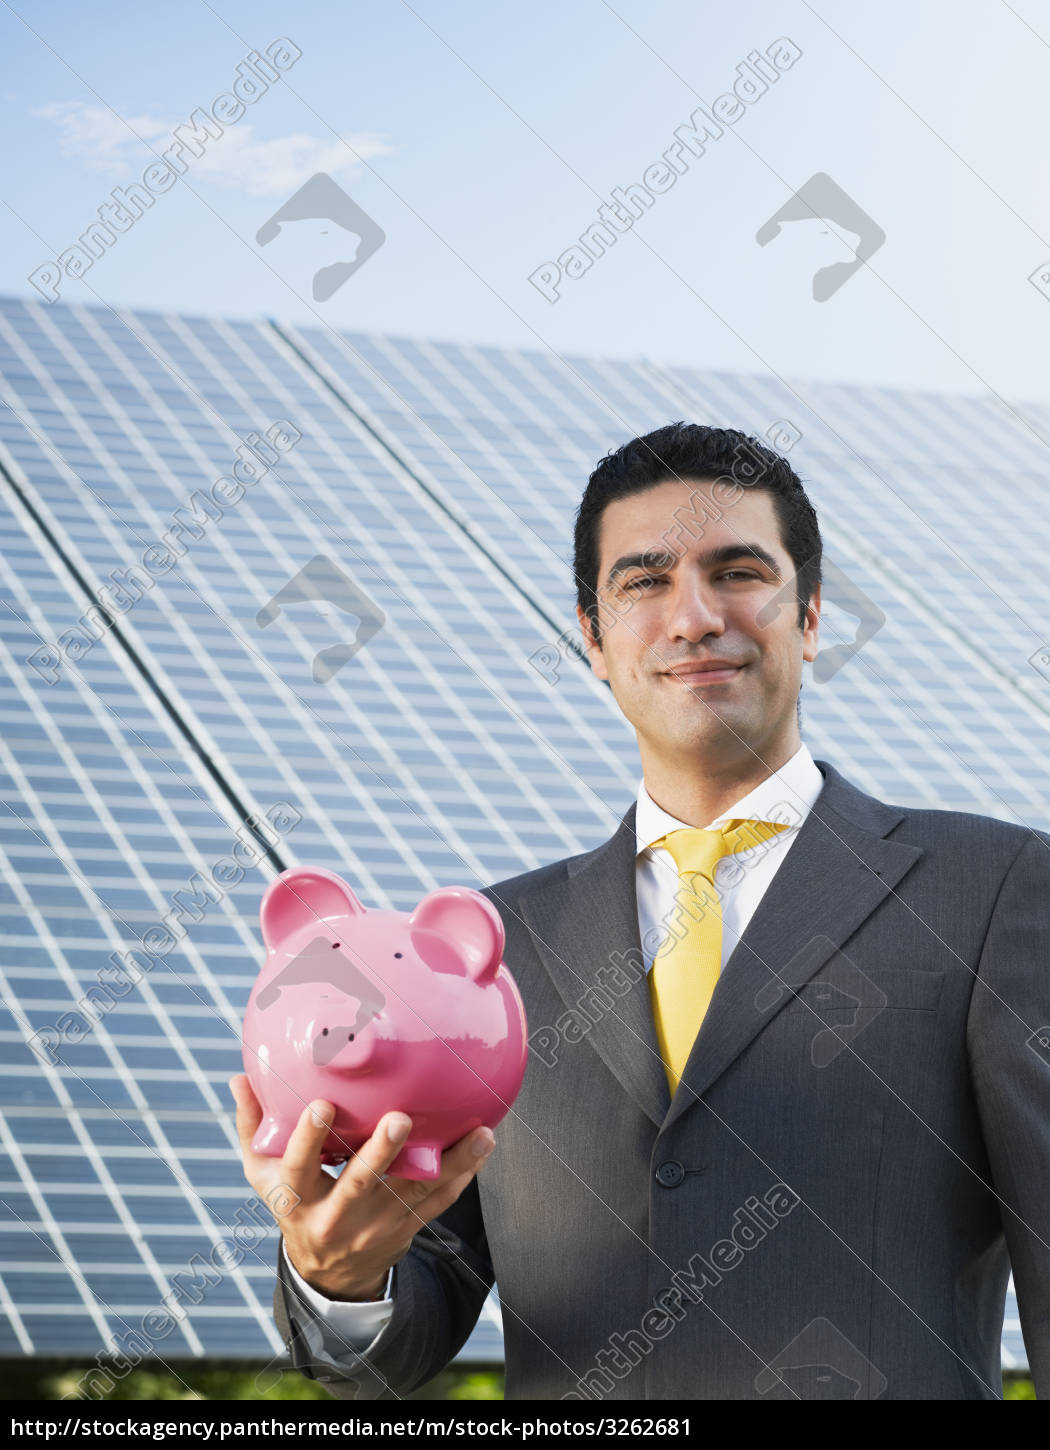 bank, lending institution, energy, power, electricity, electric power - 3262681